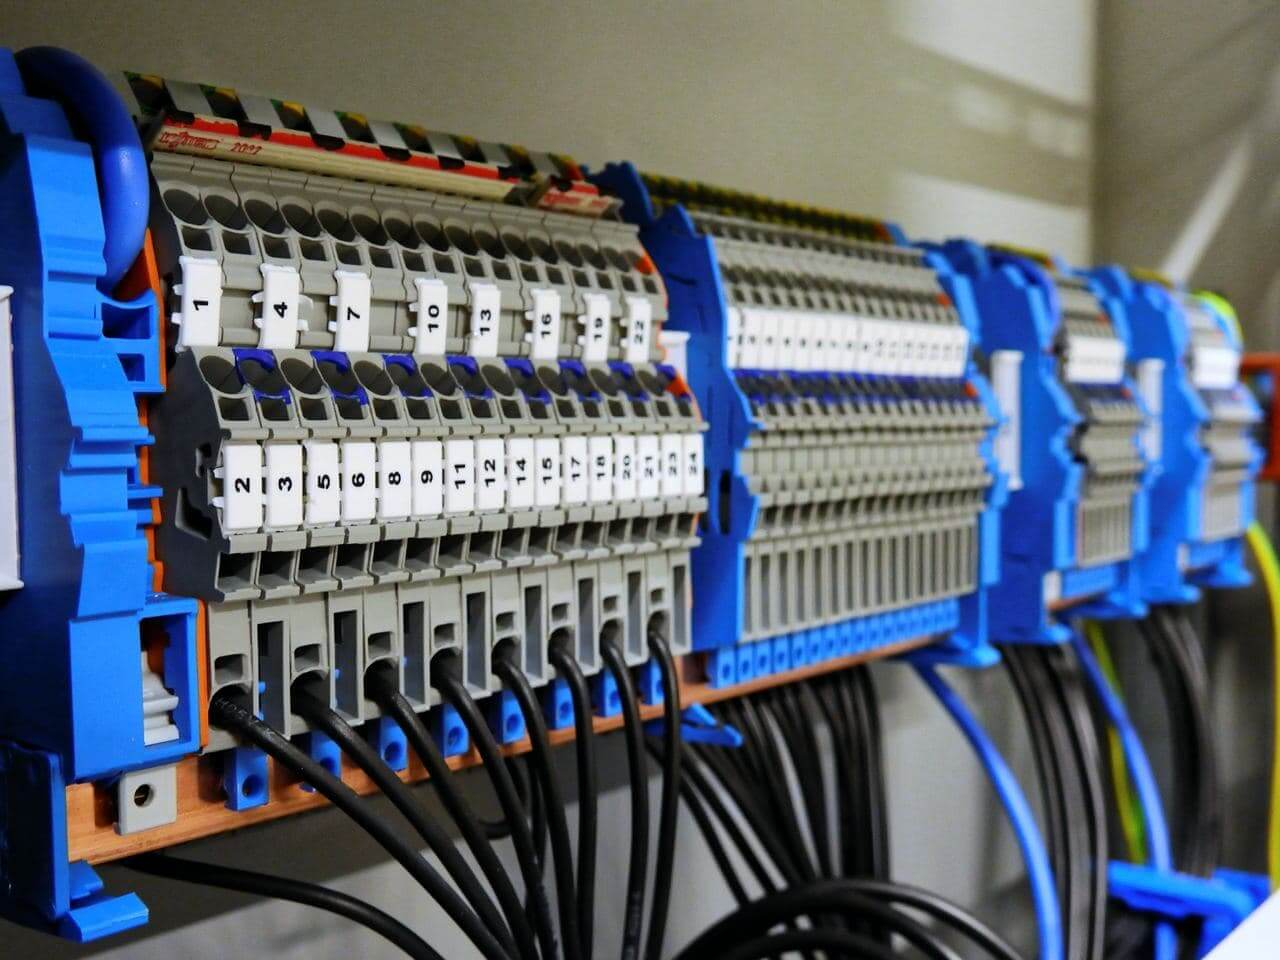 Electrical equipment certification services